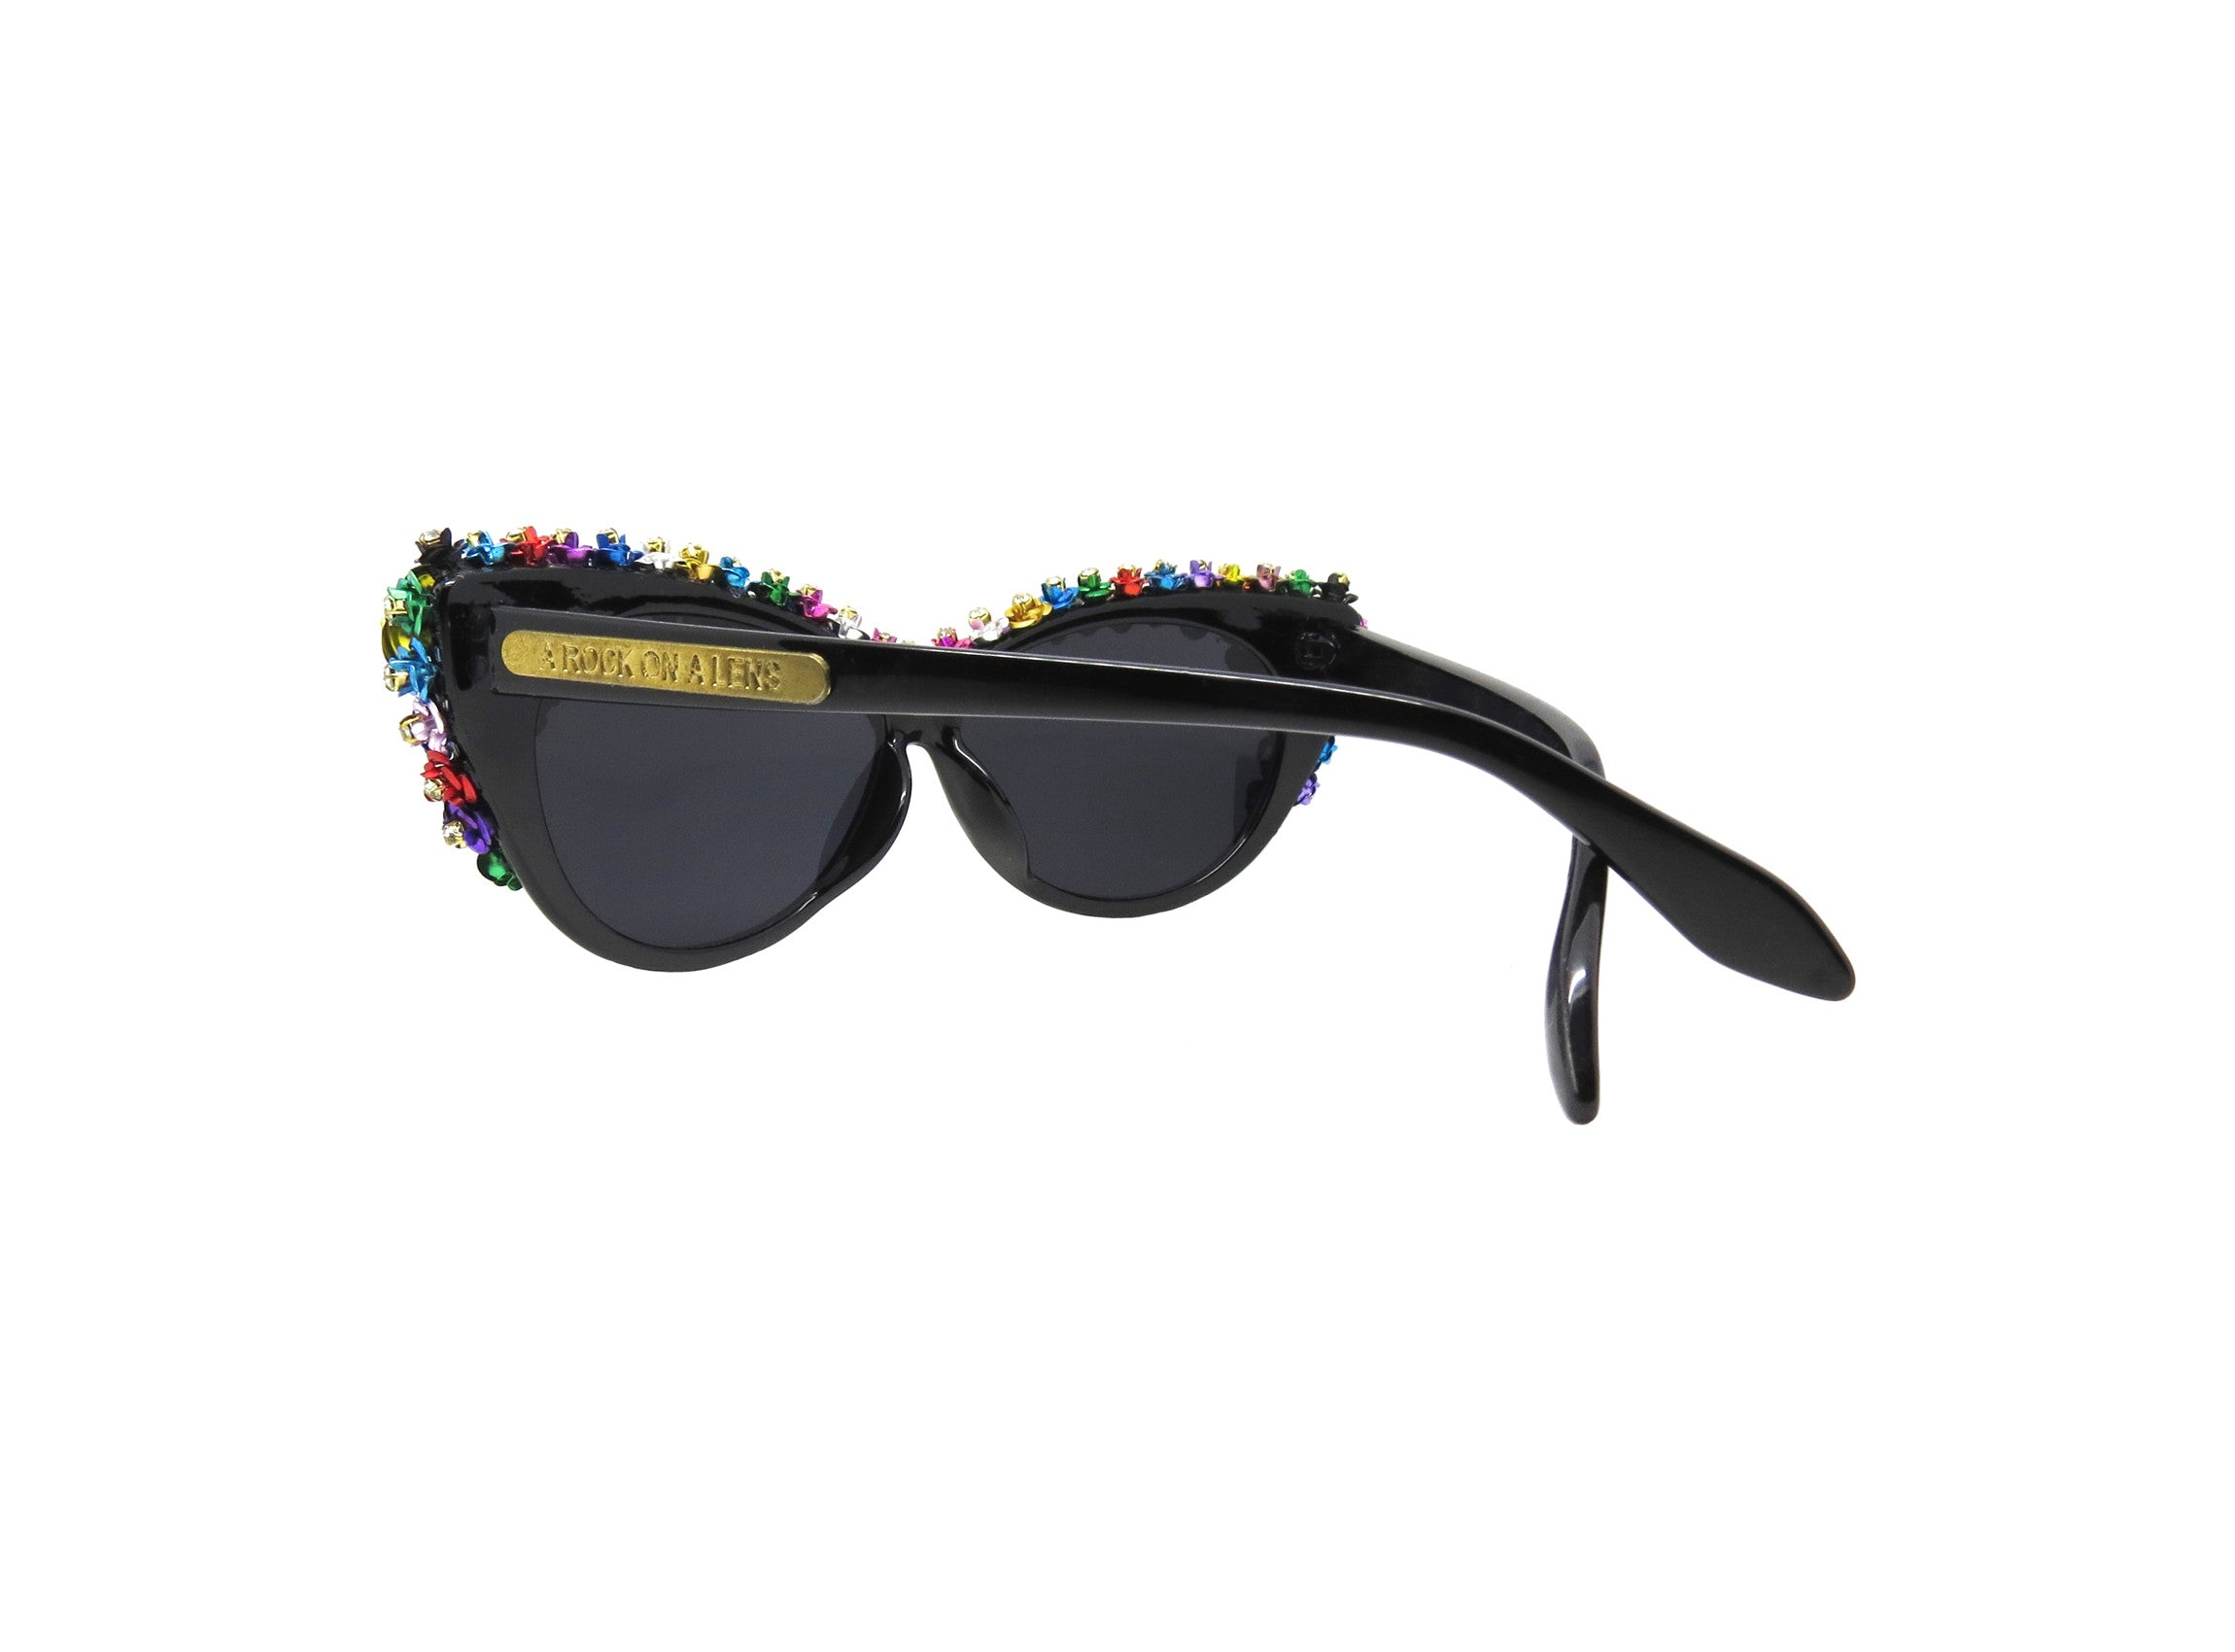 Custom made cat-eye sunglasses, hand detailed with metal flowers and large Swarovski crystals.